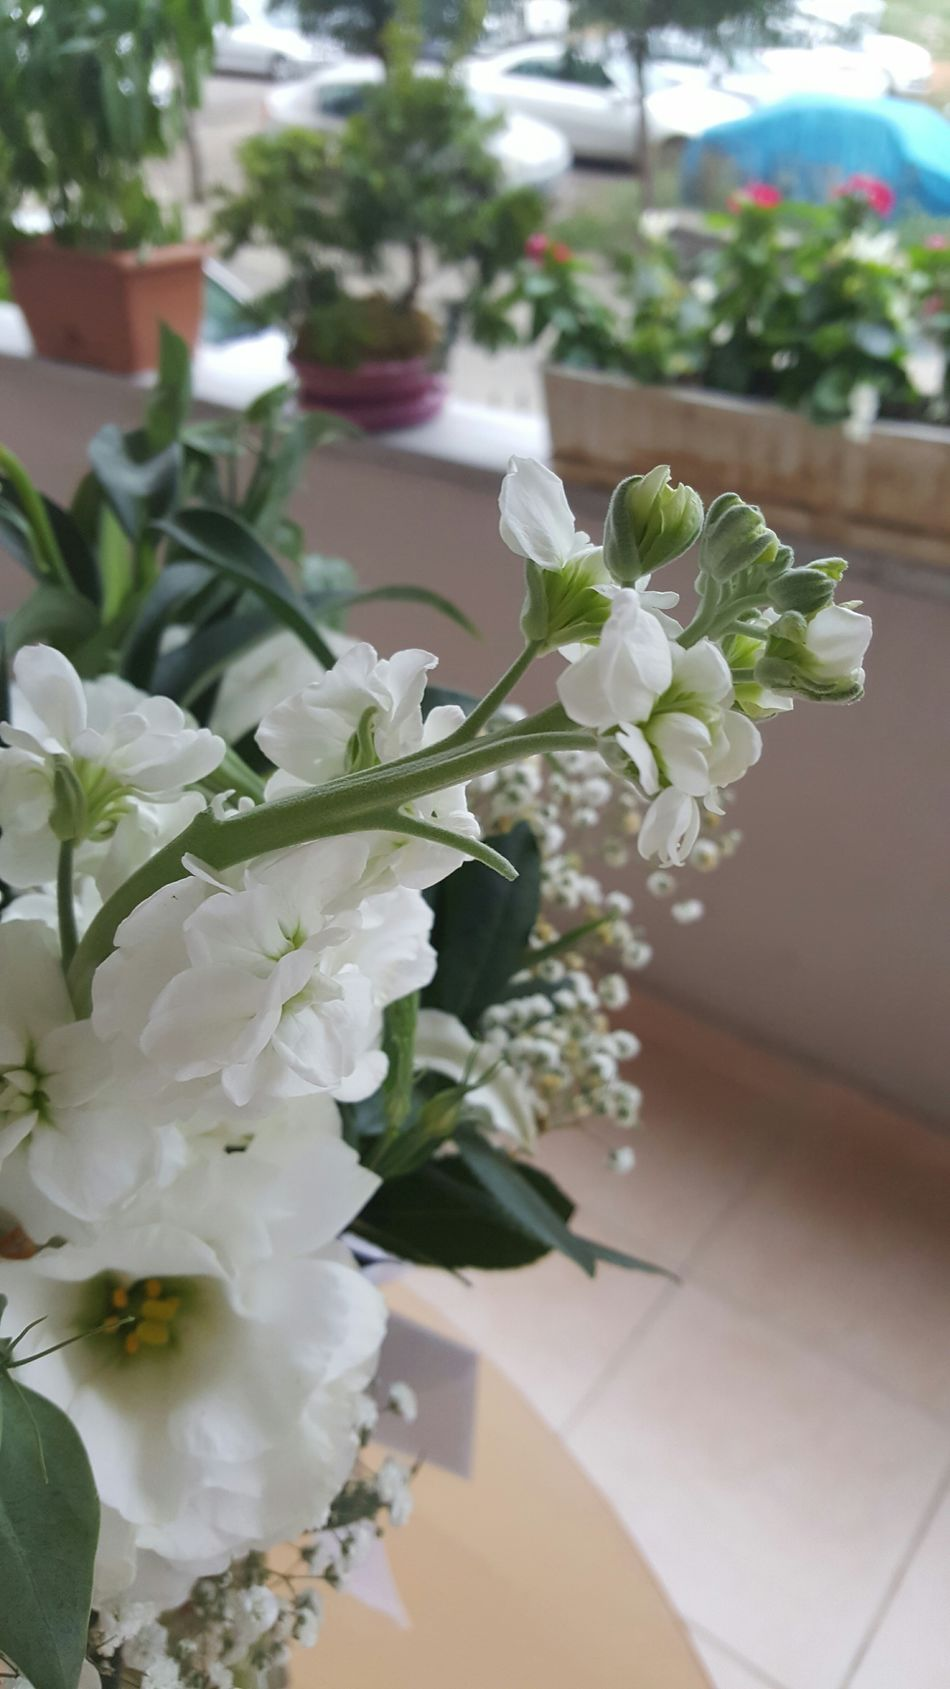 White Flowers From My Lens Lovely Atmosphere Taking Photos Balcony Flower Collection RePicture Growth